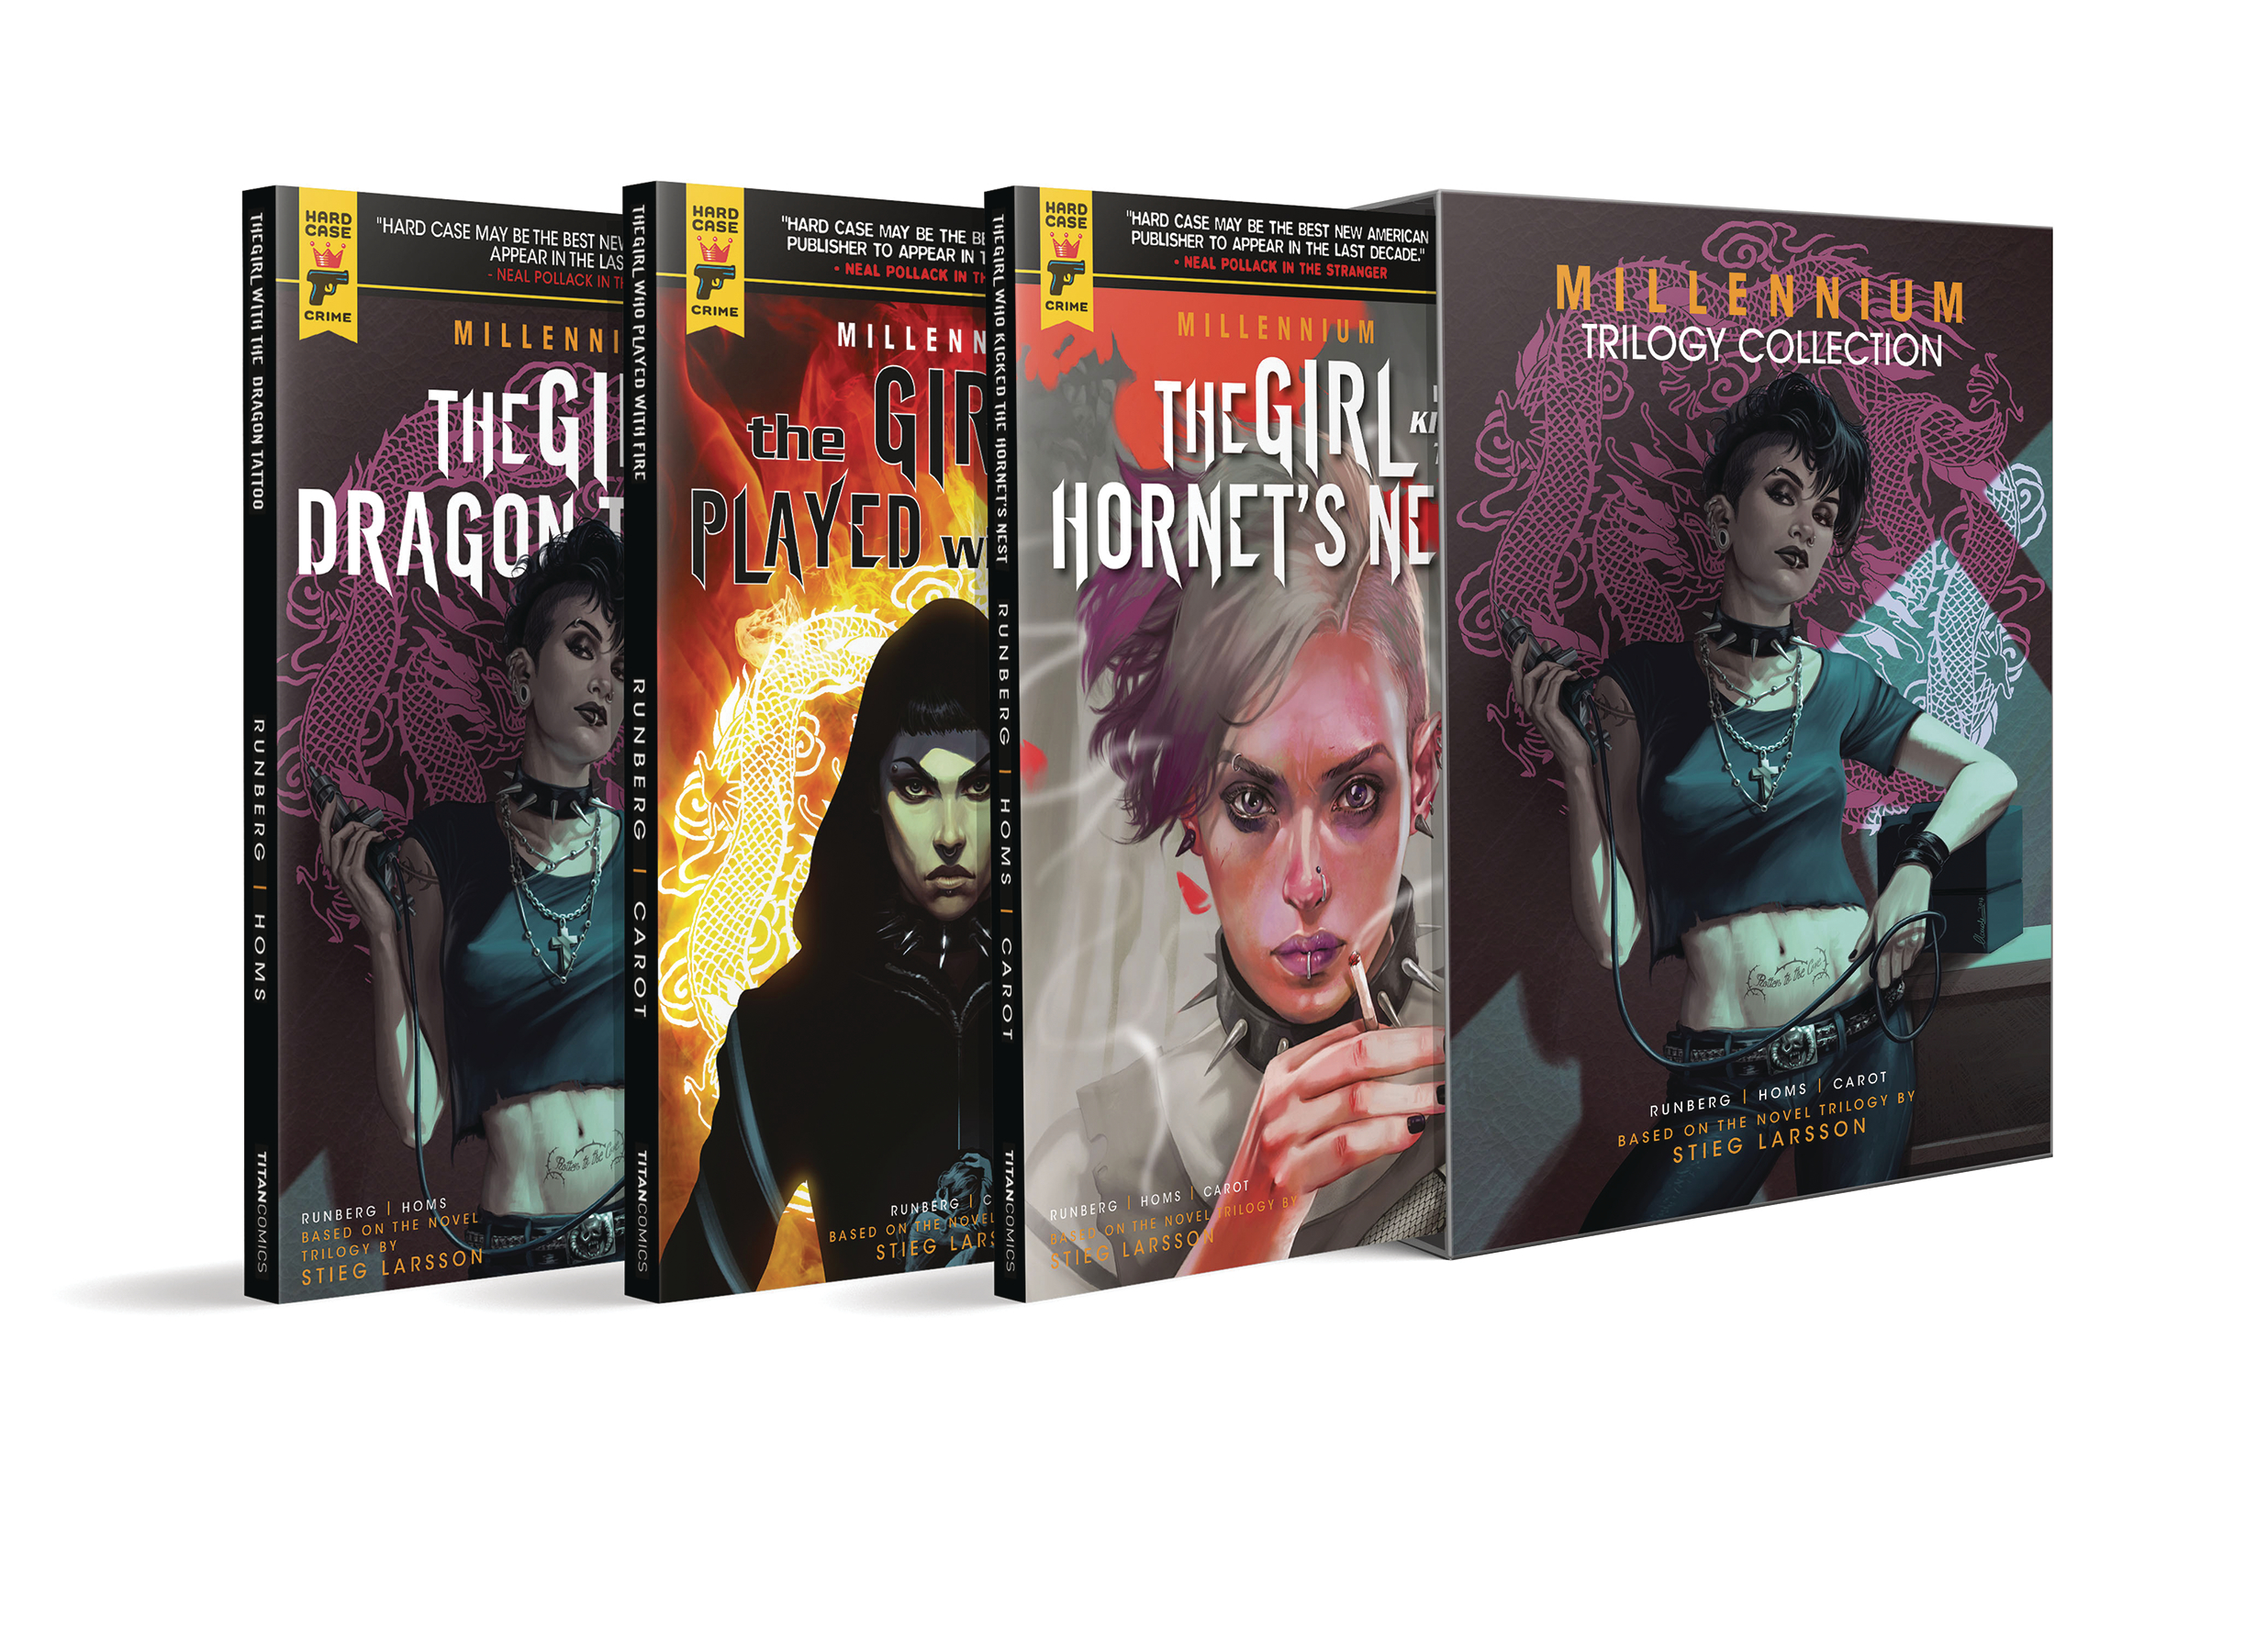 MILLENNIUM TRILOGY BOX SET